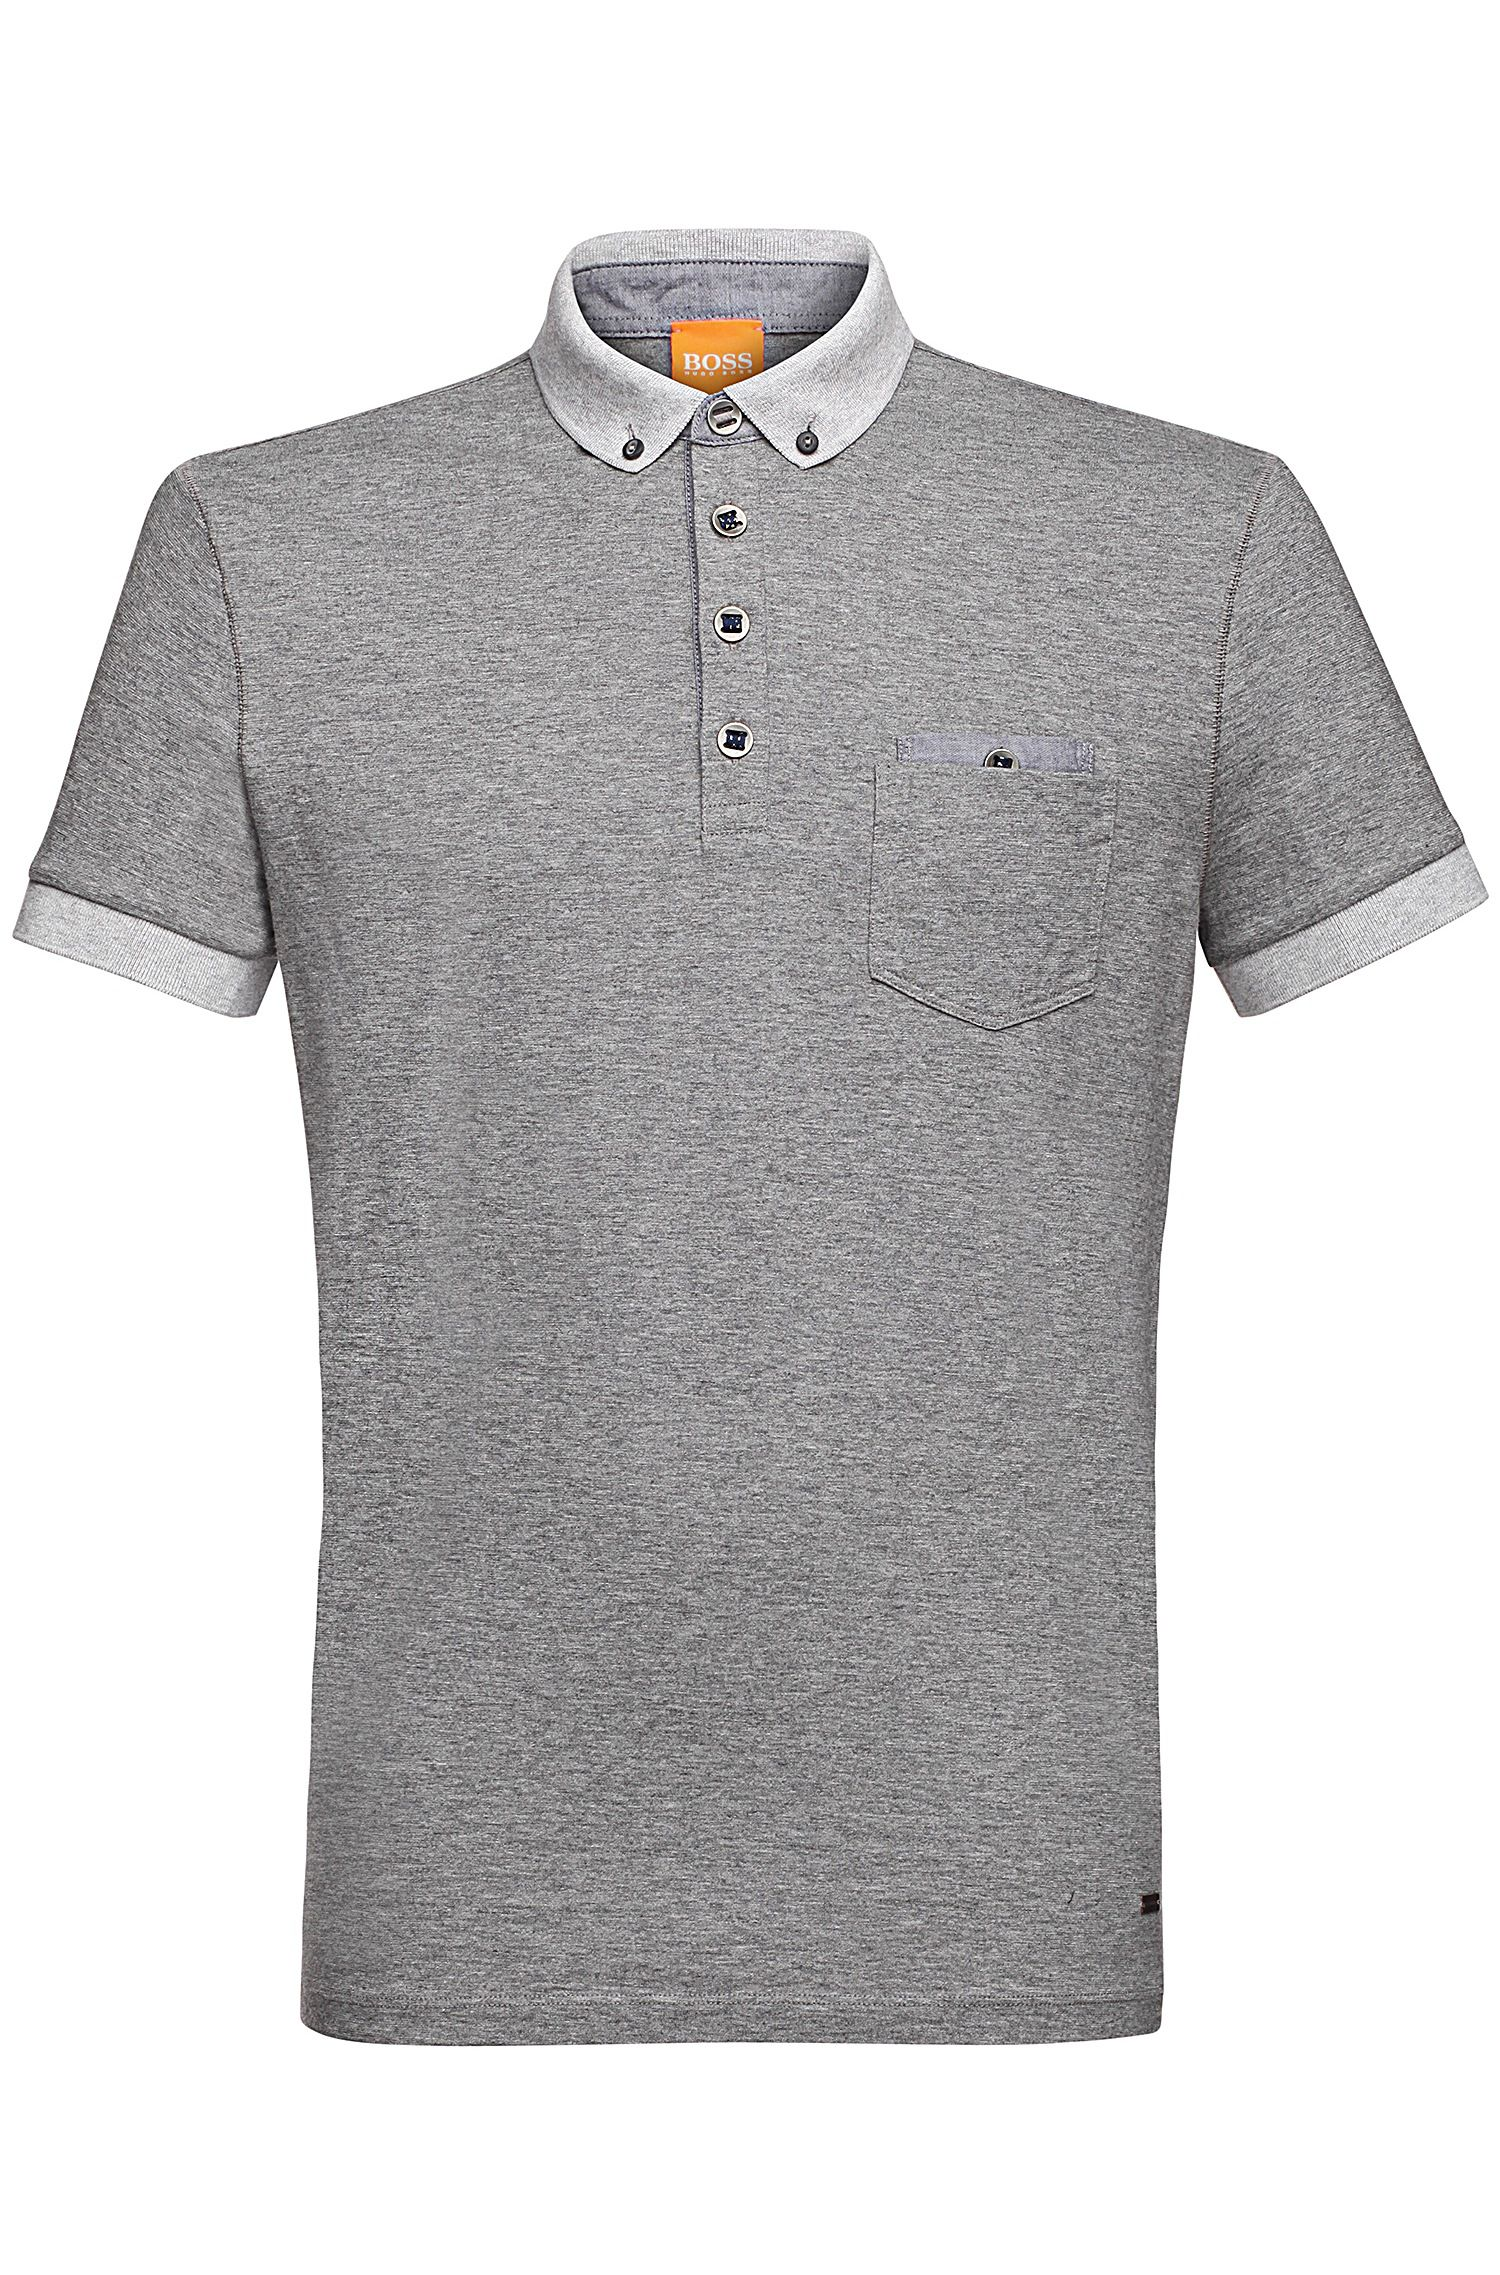 Yarn-Dyed Cotton Jersey Polo | Patches